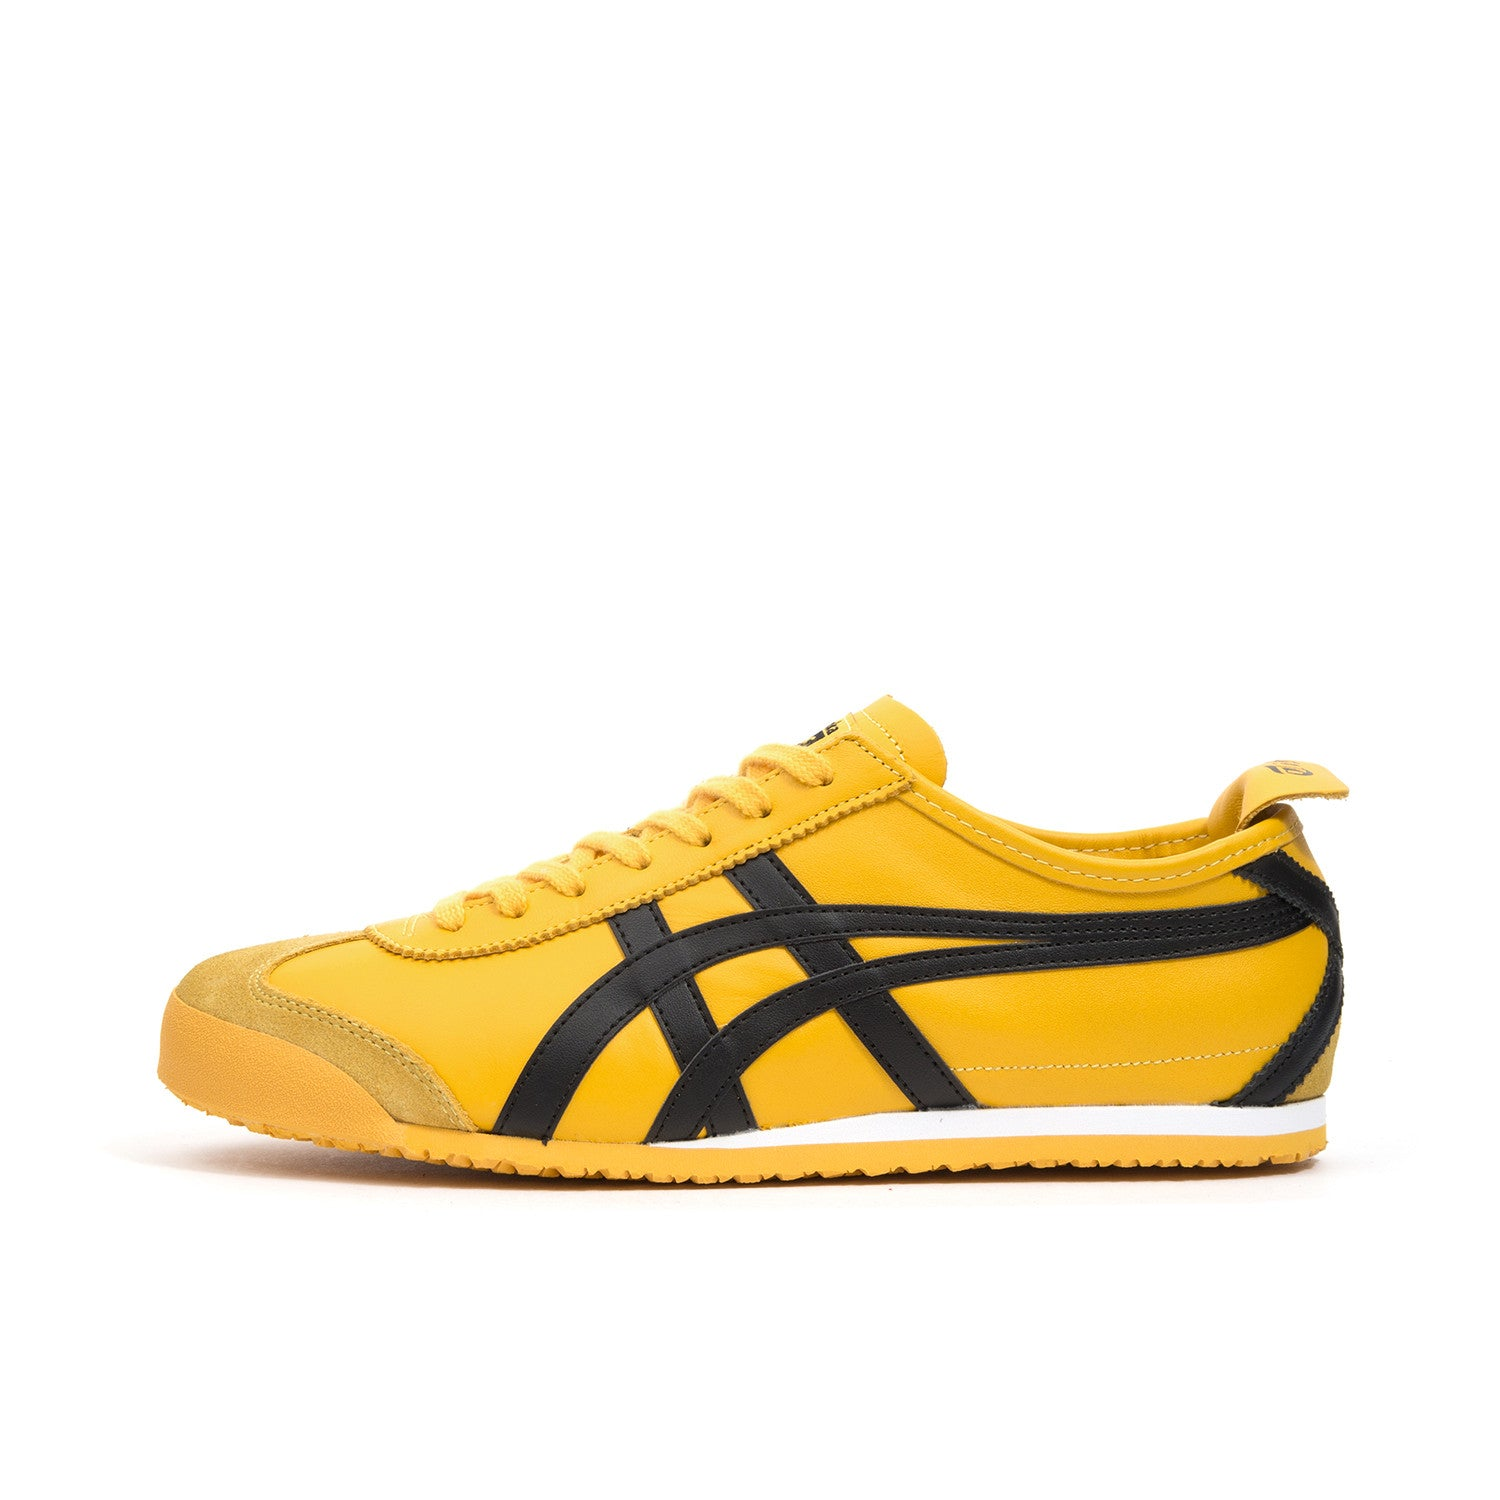 quality design 1f521 ae9b6 Onitsuka Tiger Mexico 66 Yellow/Black